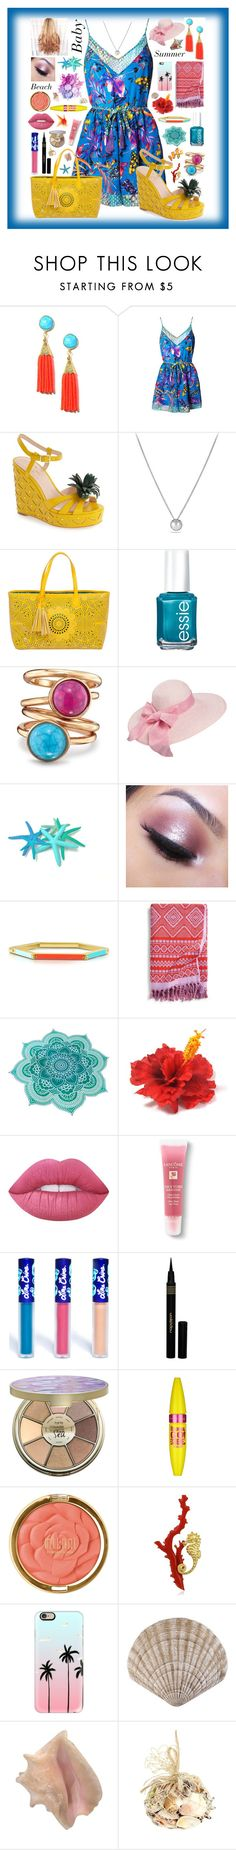 """Beach Baby 🌴"" by aspiretoinspire22 ❤ liked on Polyvore featuring Matthew Williamson, Kate Spade, David Yurman, BUCO, Essie, Avon, Too Faced Cosmetics, Tory Burch, Vera Bradley and Lime Crime"